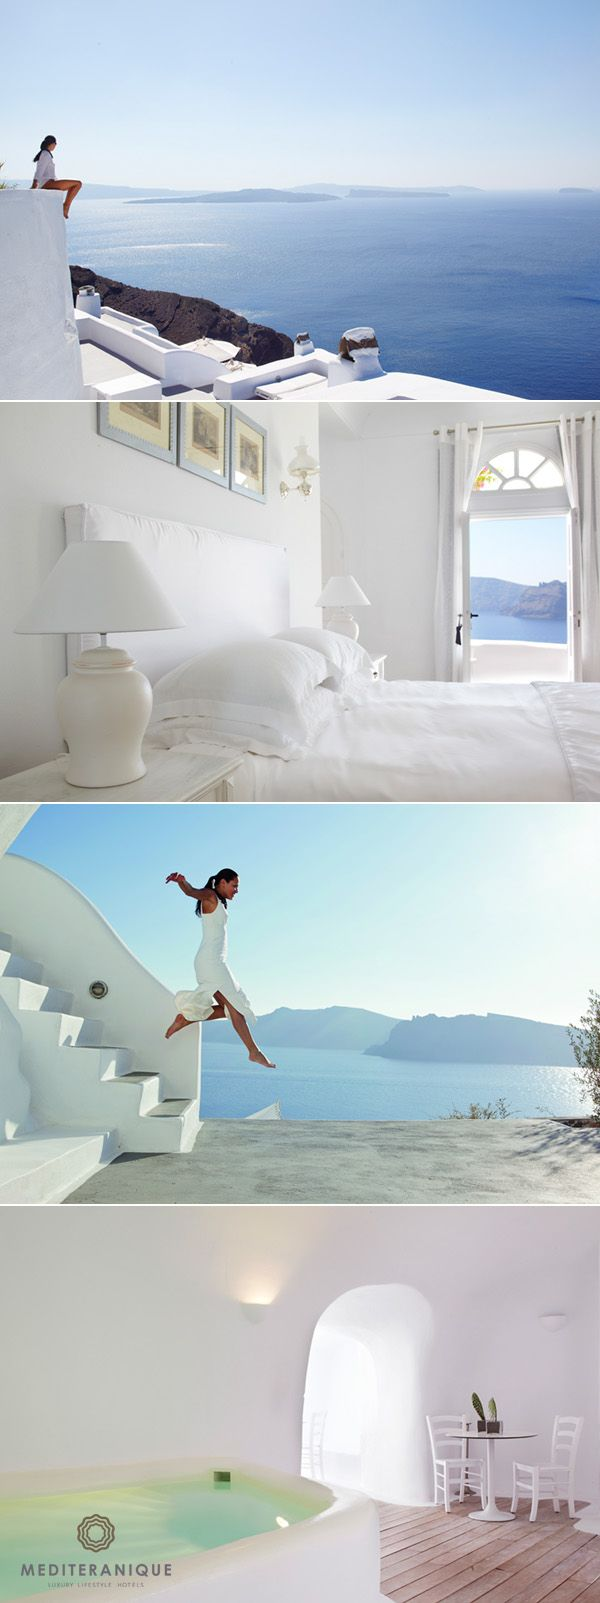 Kirini Suites & Spa, Santorini, Greece http://www.mediteranique.com/hotels-greece/santorini/kirini-suites-spa/